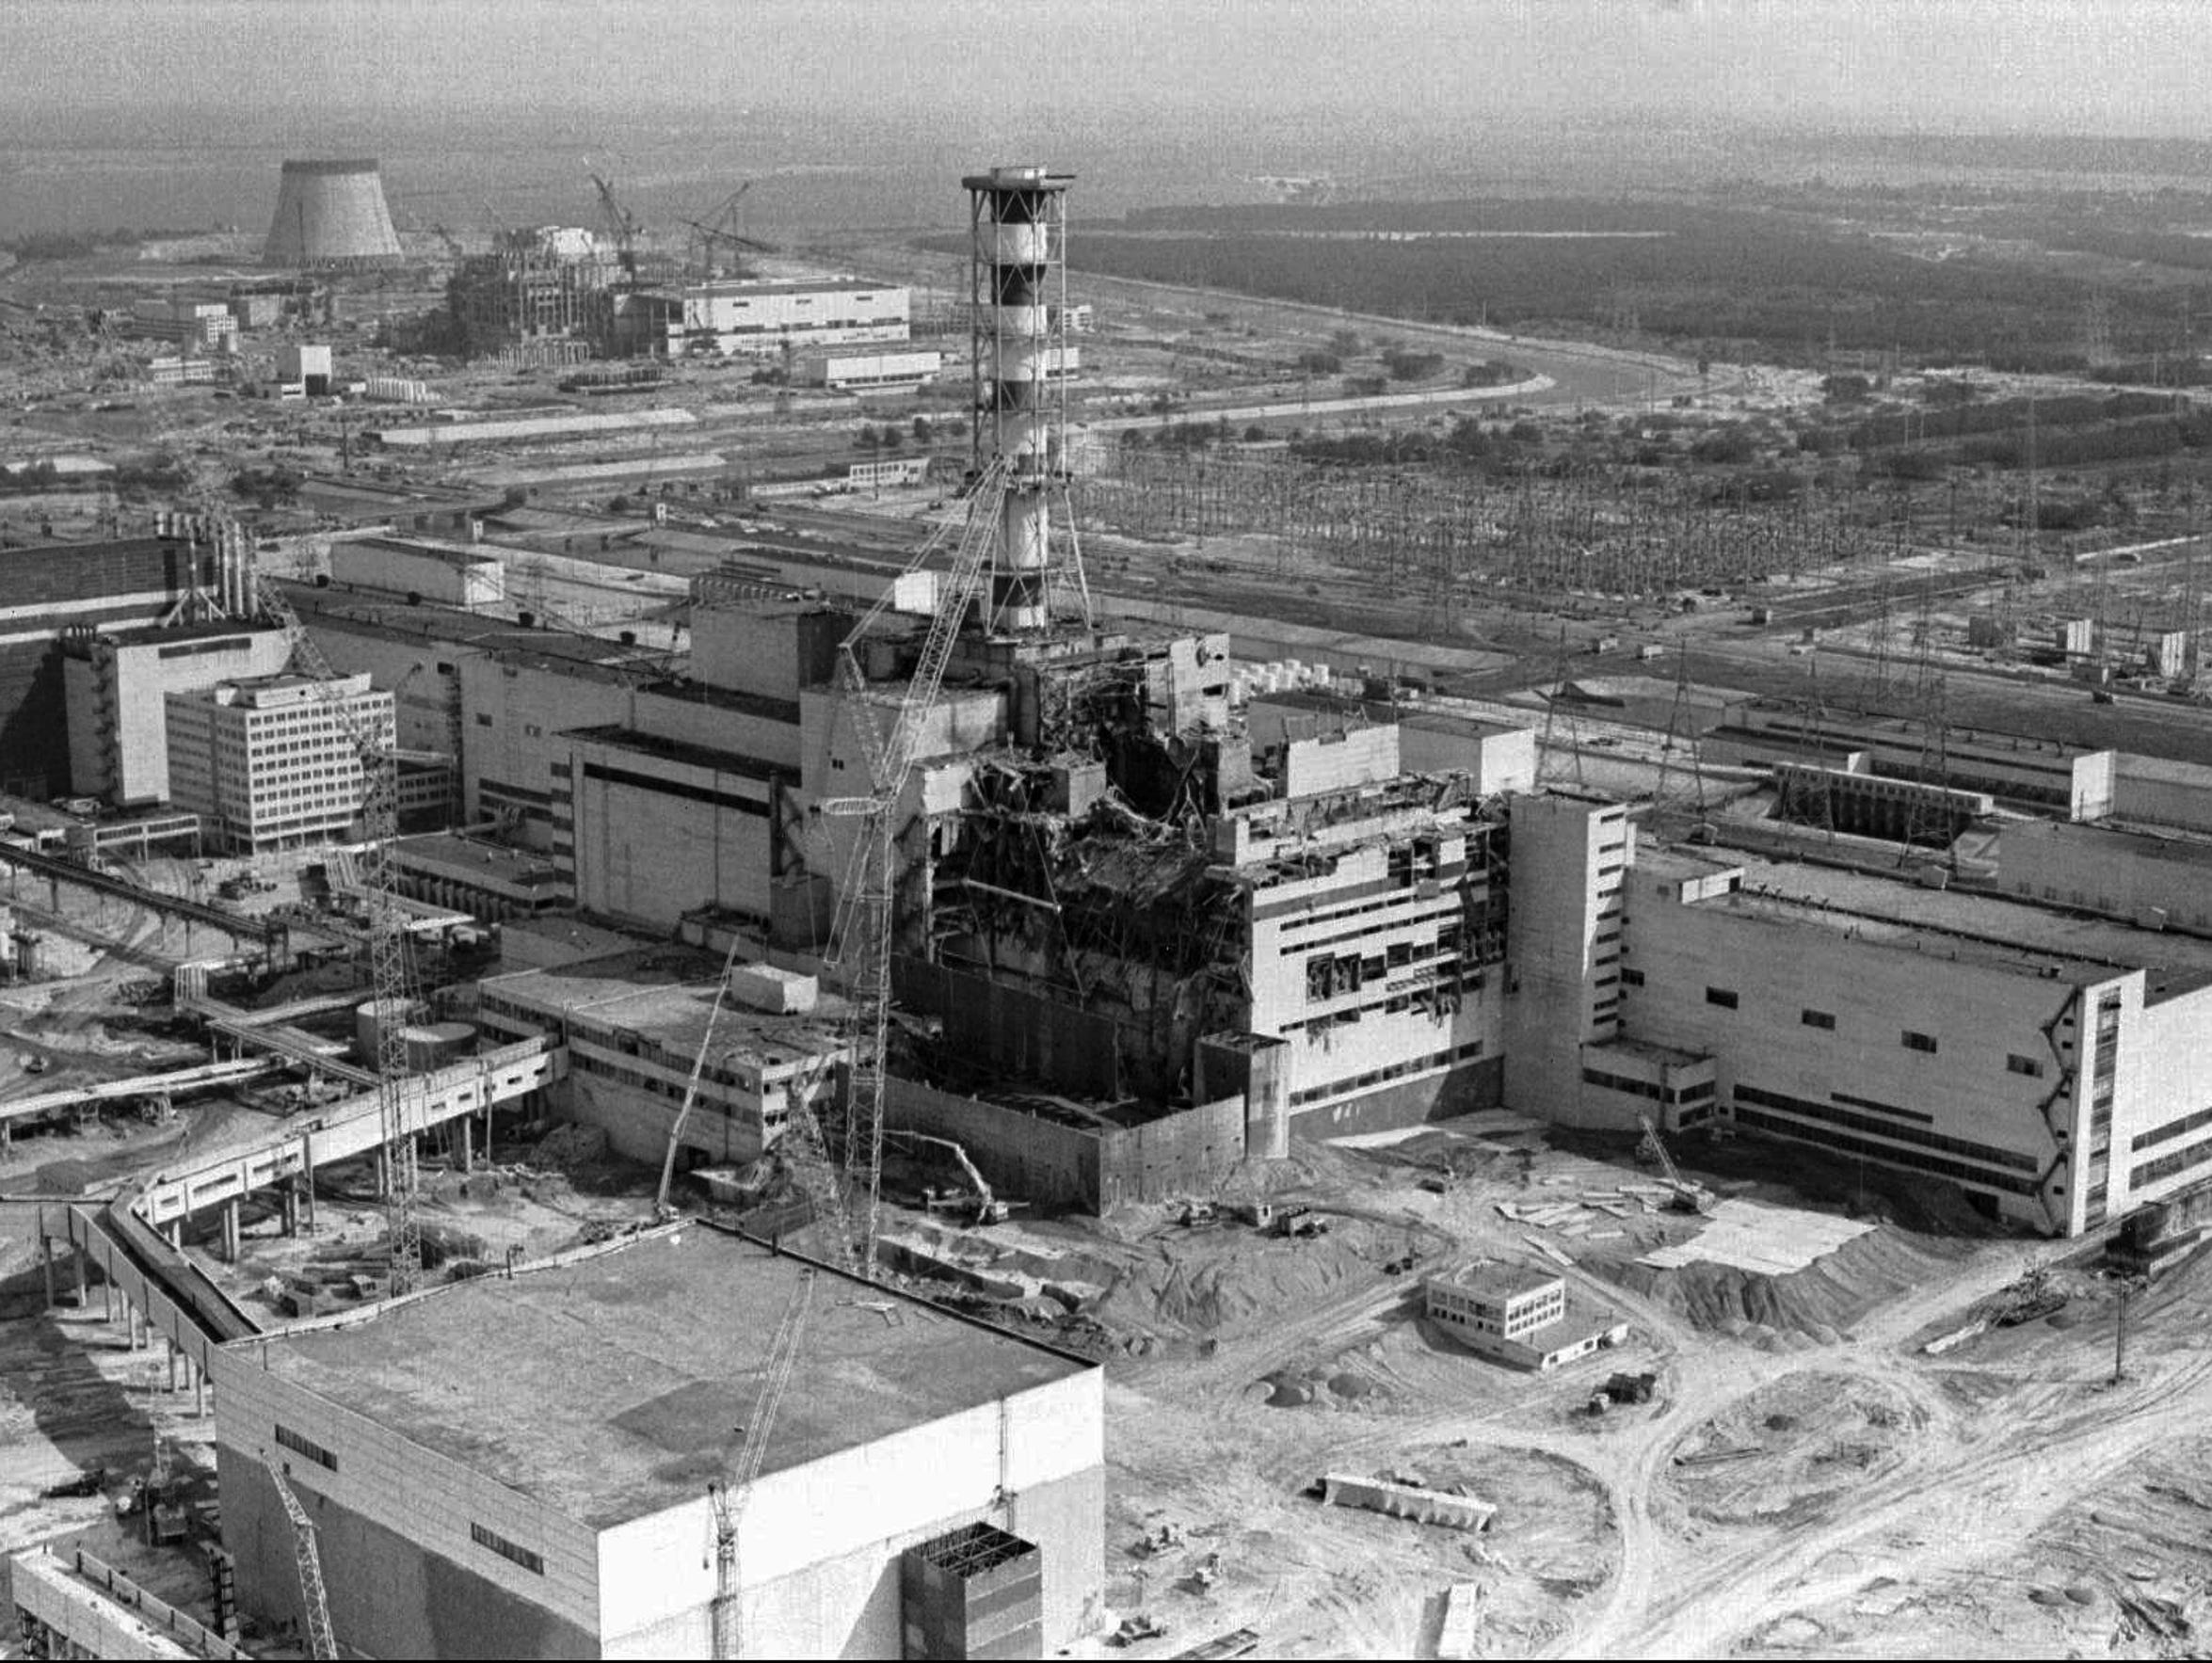 This 1986 aerial view of the Chernobyl nuclear plant